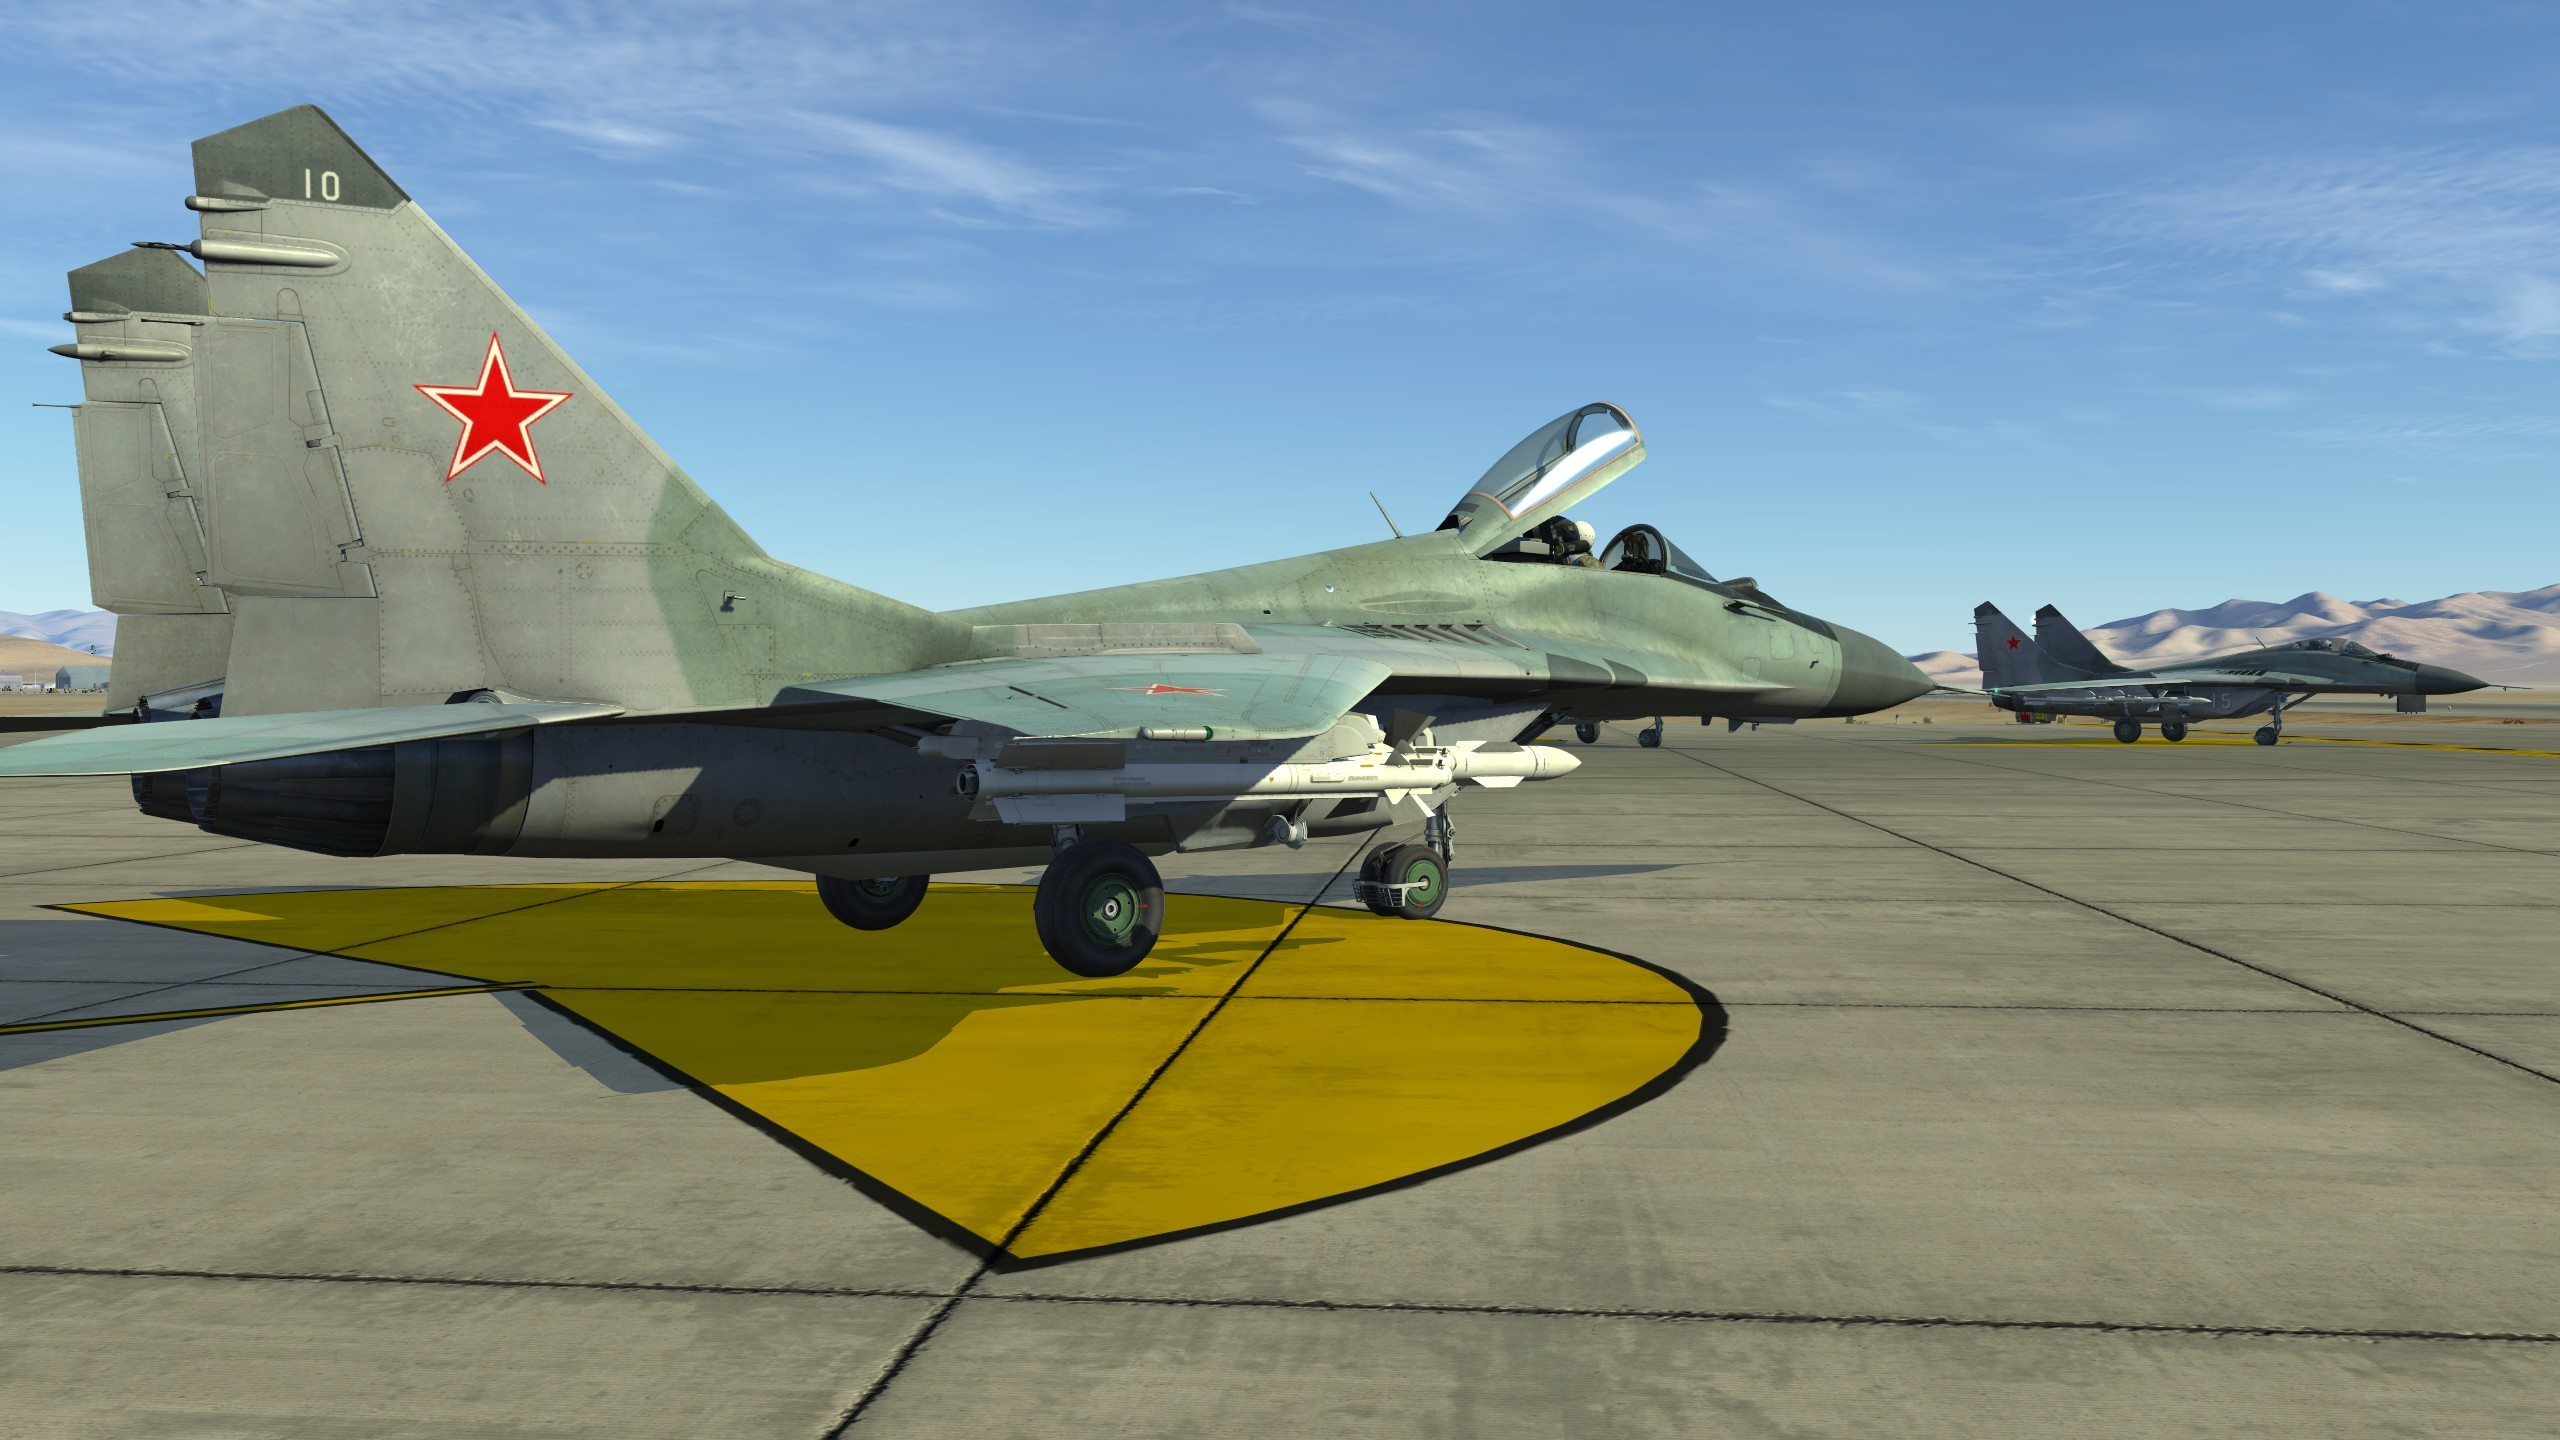 Dcs world news page 11 subsim radio room forums httpsforumsdspiketexclusel in dcs2014 gumiabroncs Image collections